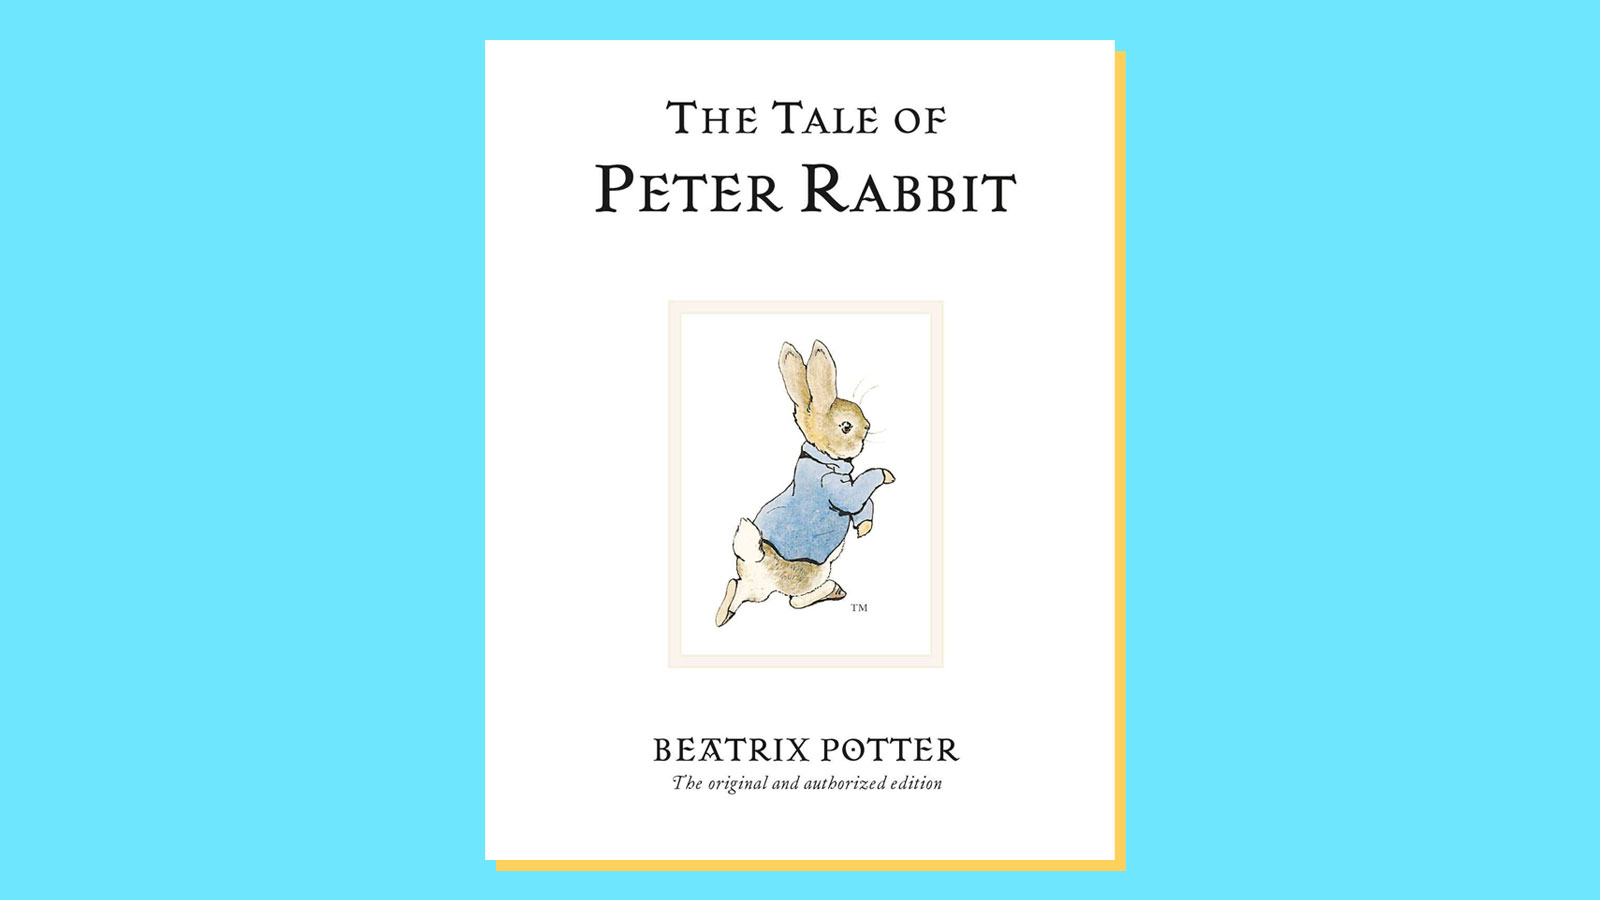 The secret scientific career of beloved children's author Beatrix Potter